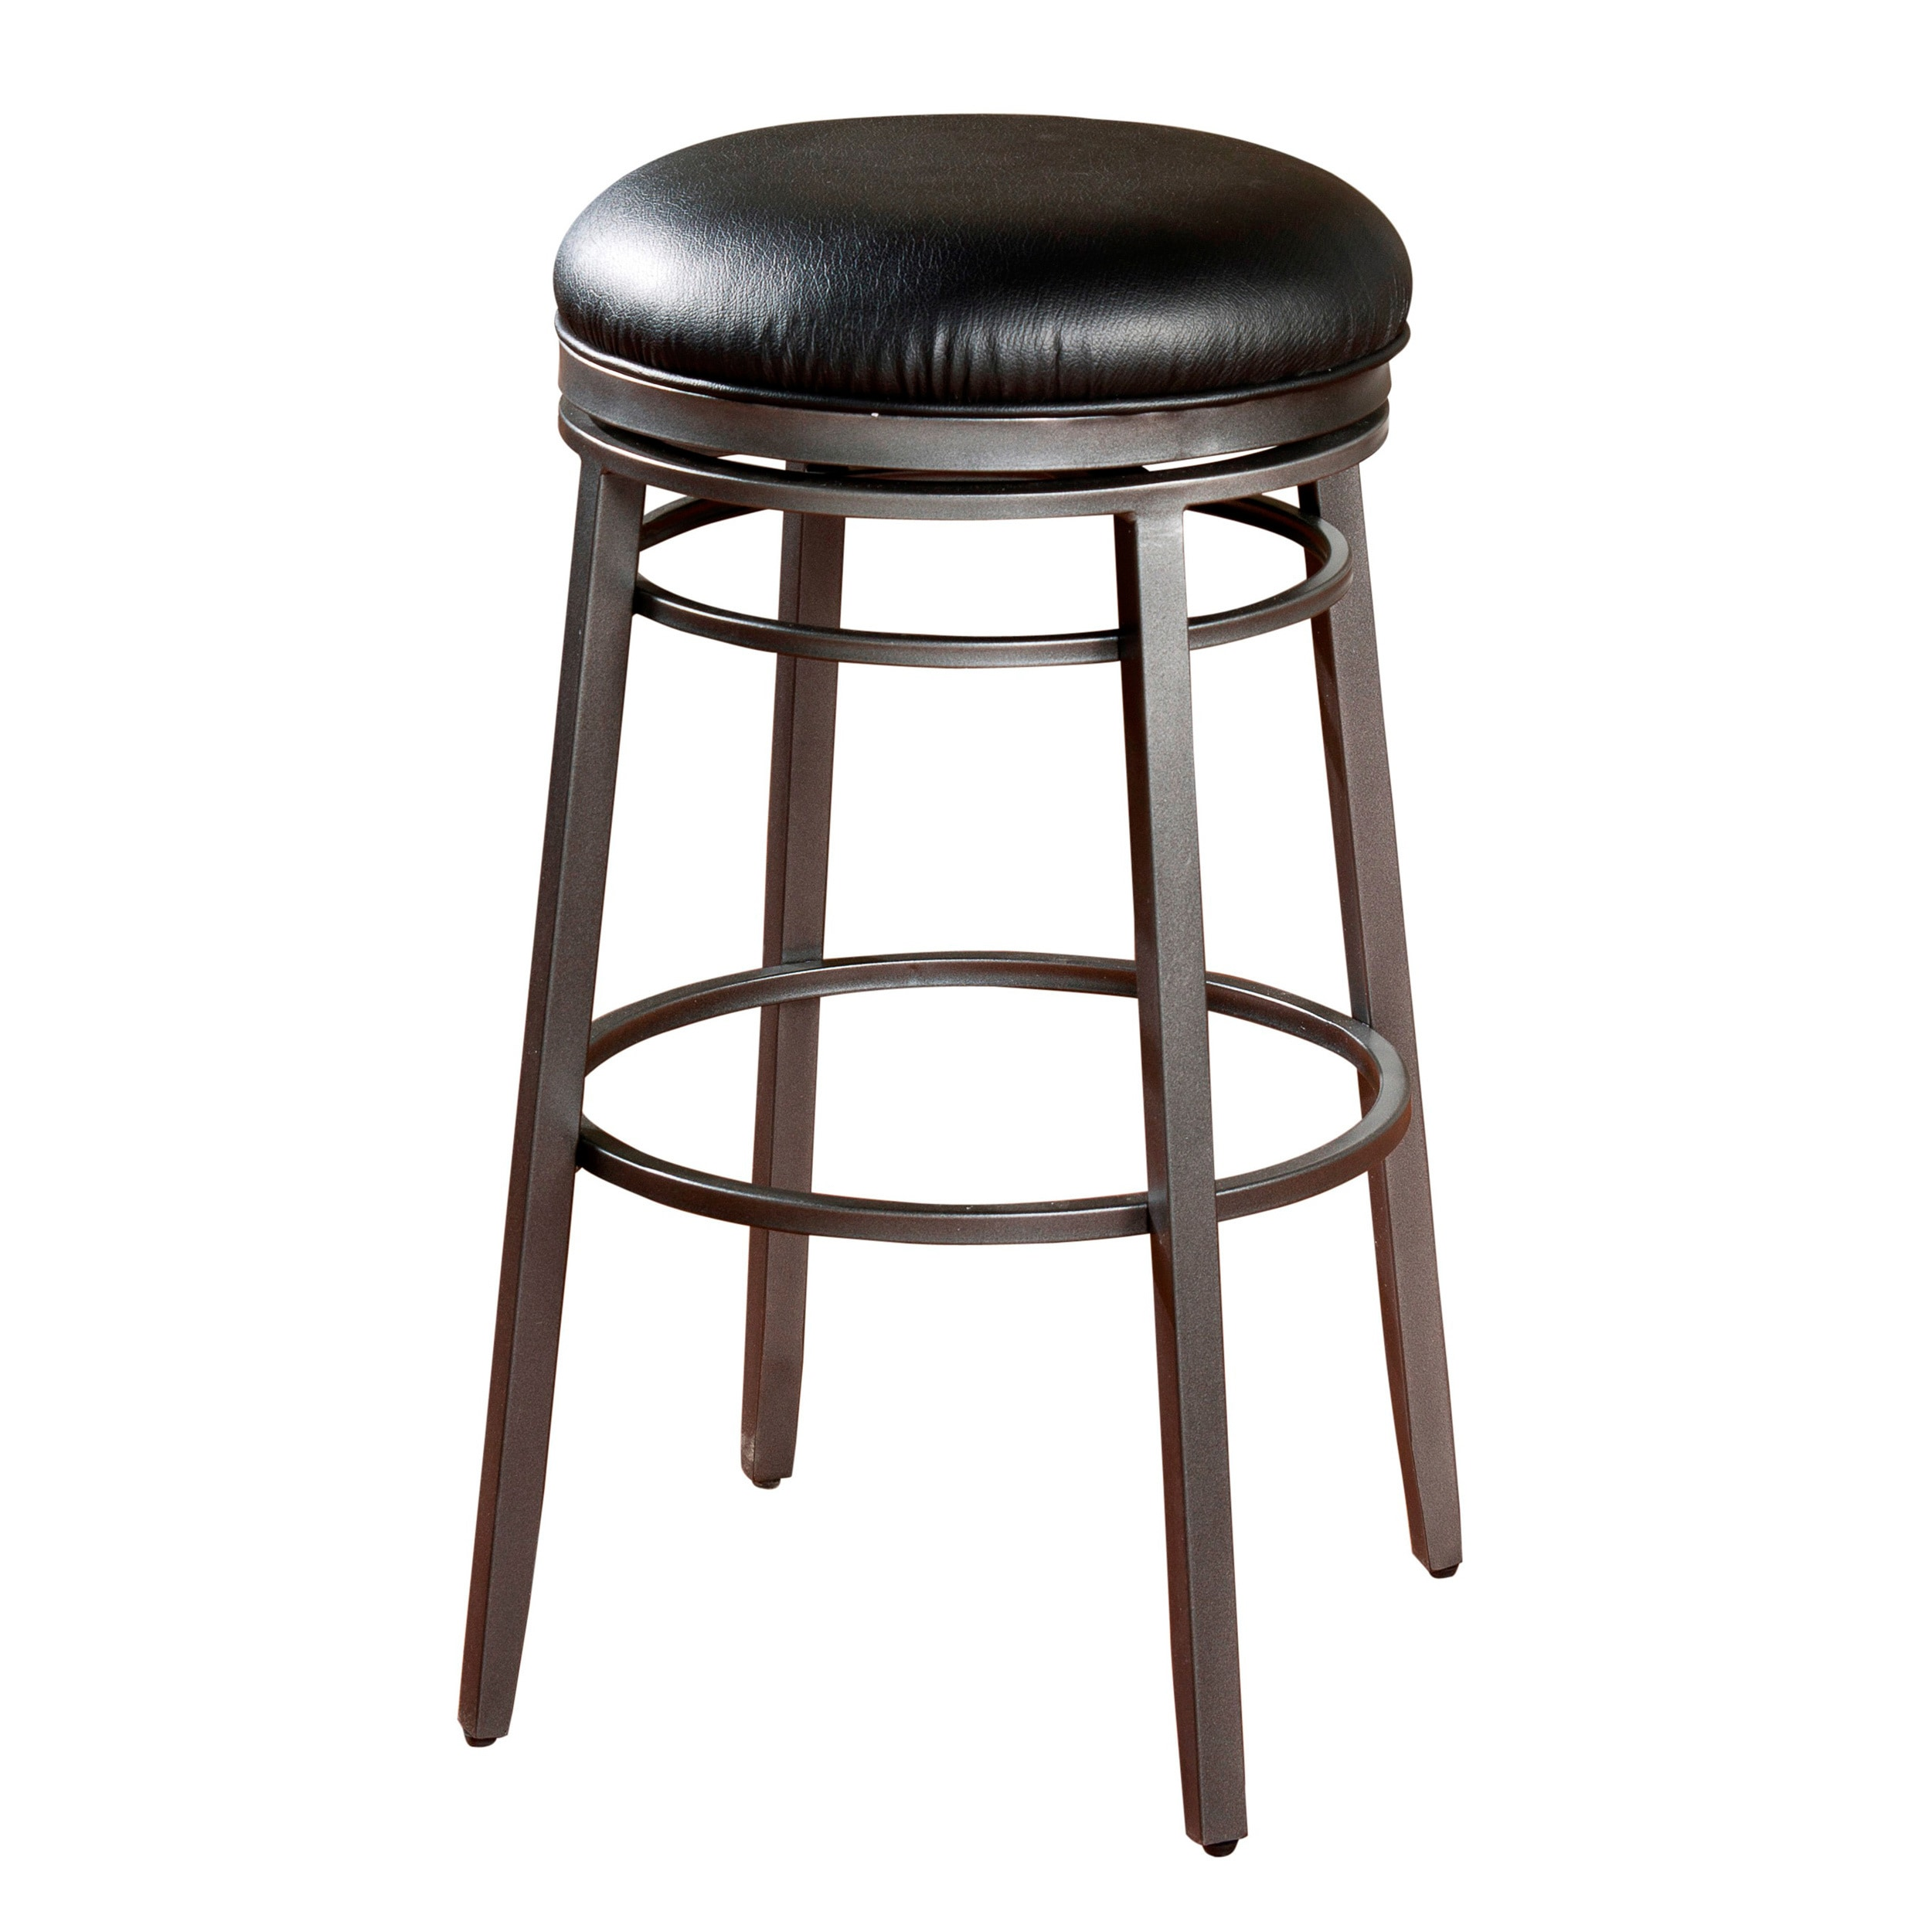 Copper Grove Ashdown 30 Inch Backless Bar Stool 887178278550 Ebay